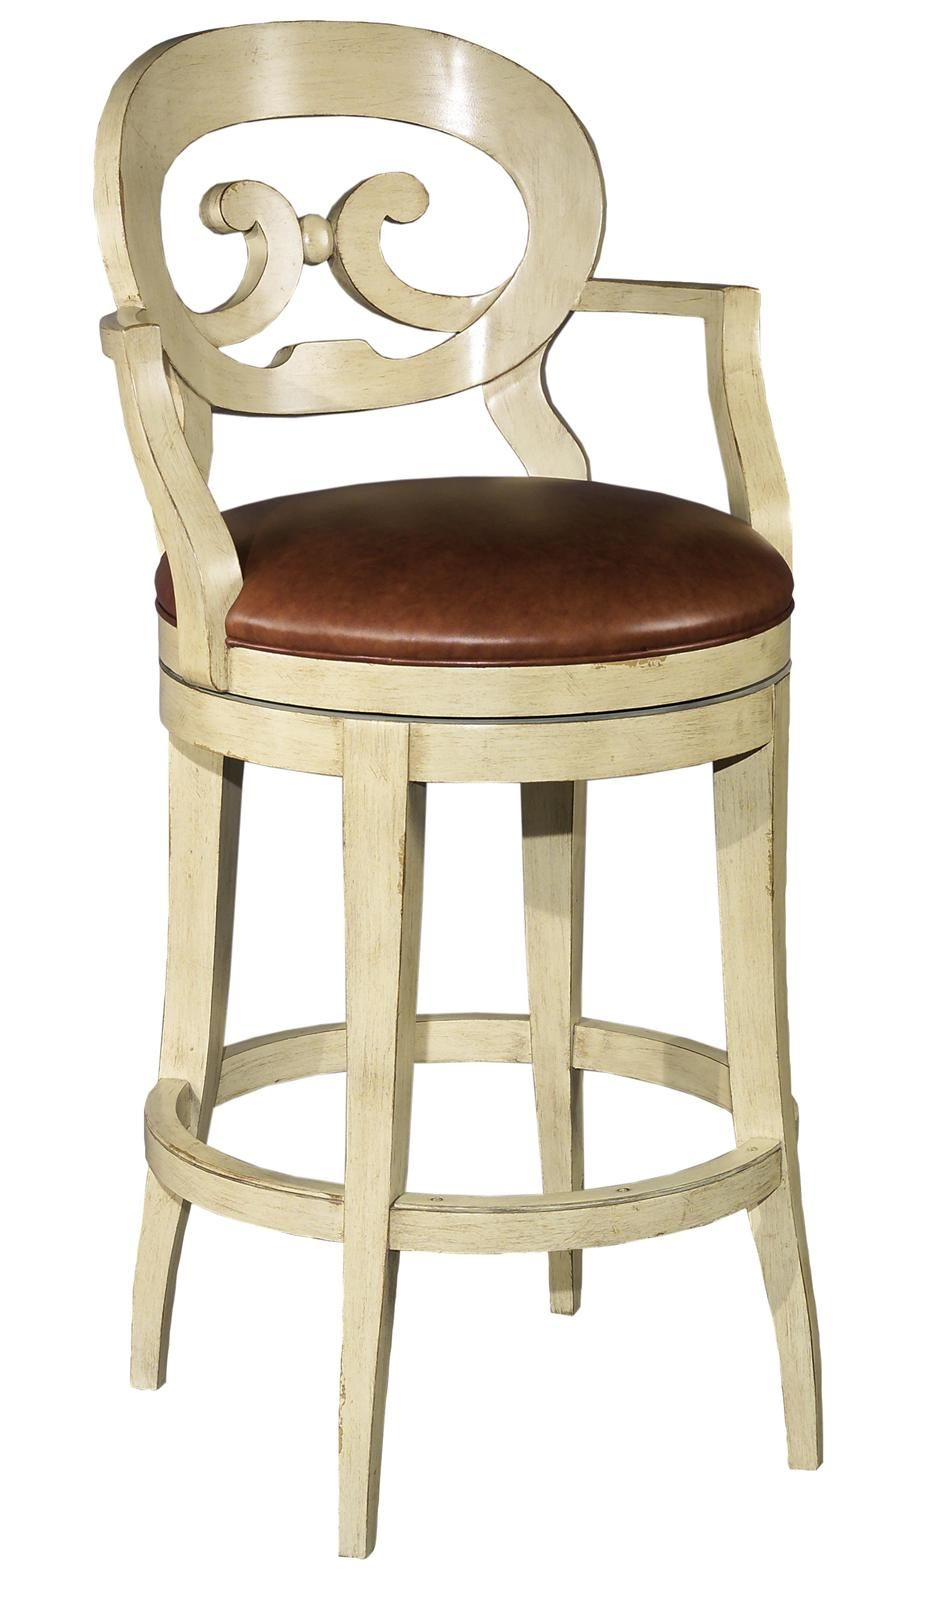 Furniture New Model Wood Swivel Bar Stool With Arm Design And Beautiful Brown Leather White Cream Birch Wood O Bar Stools Swivel Bar Stools Bar Stools For Sale